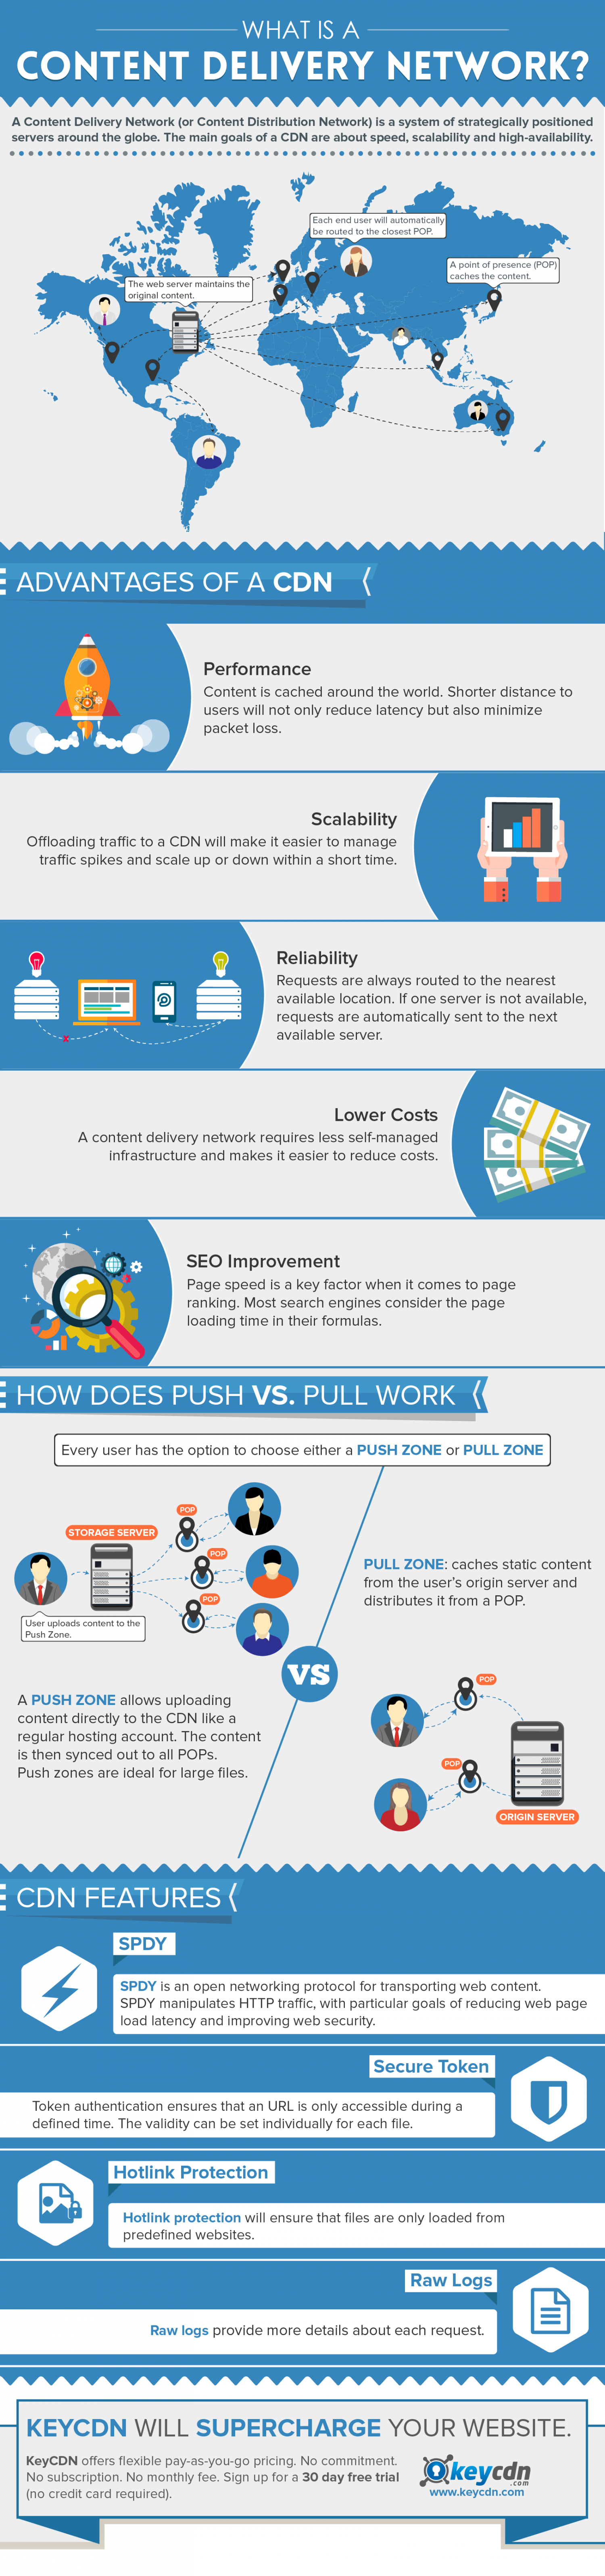 CDN Infographic: What is a Content Delivery Network? Infographic